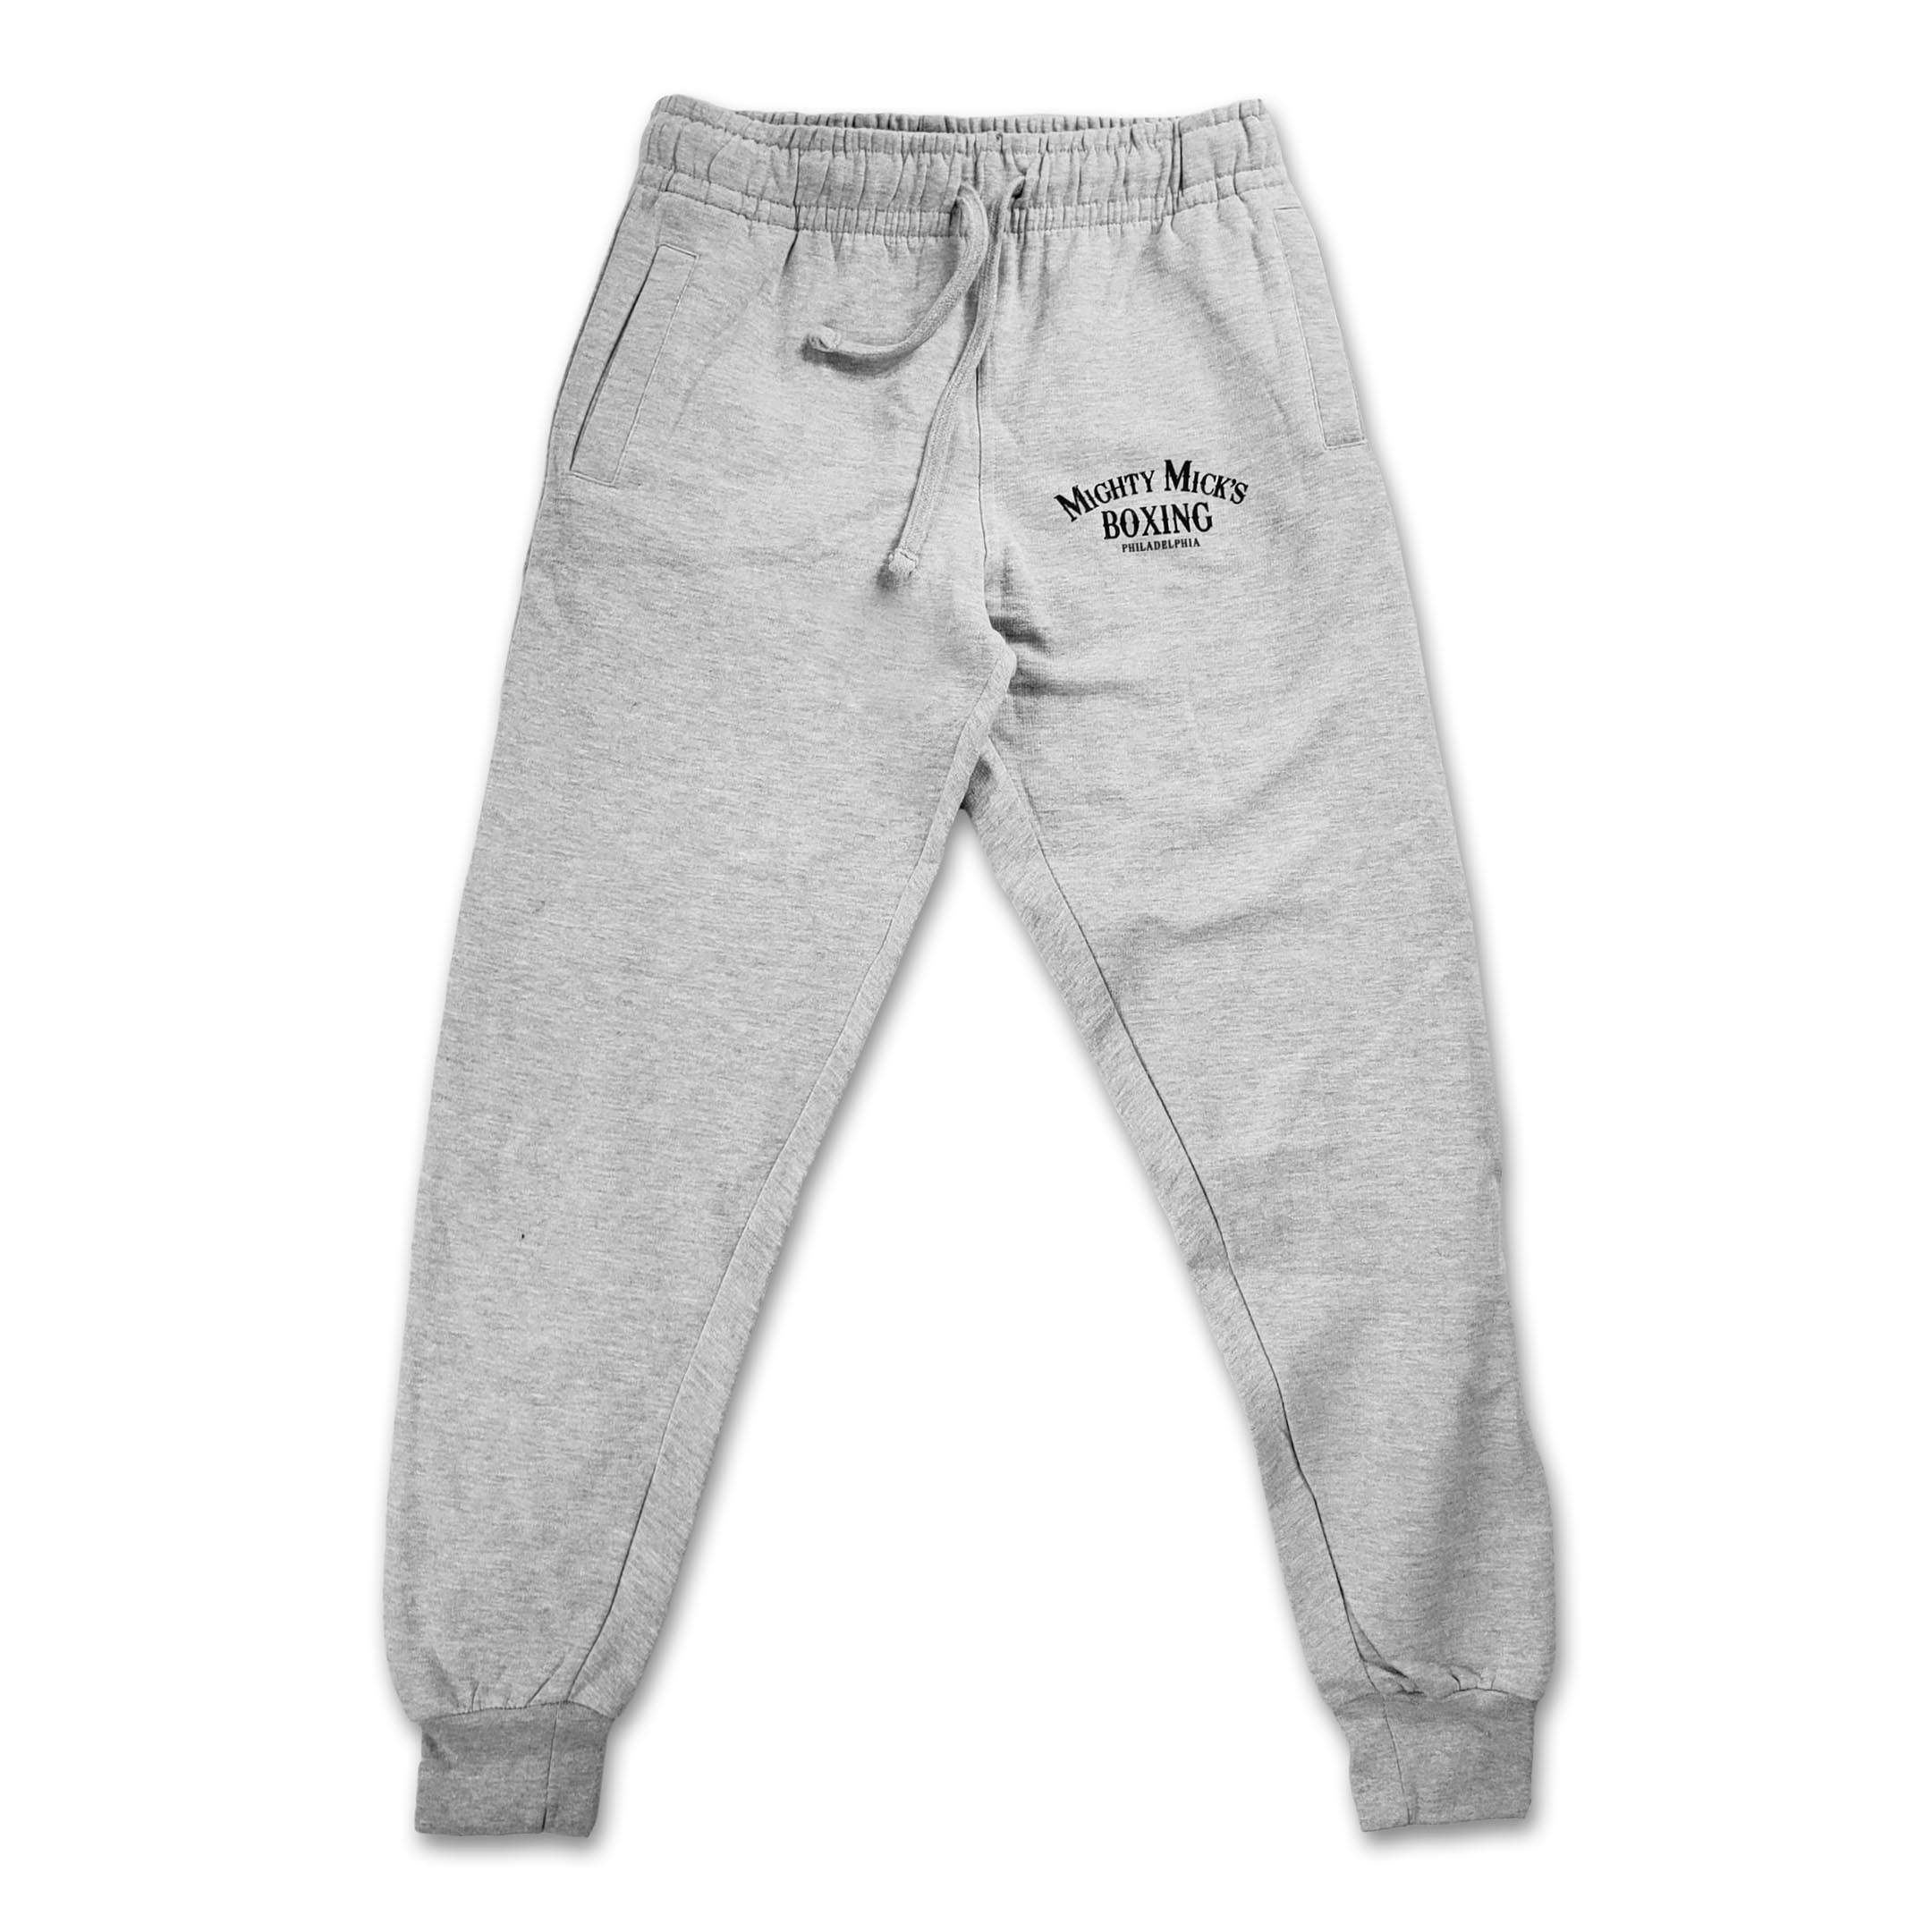 Mighty Mick's Boxing Fleece Joggers